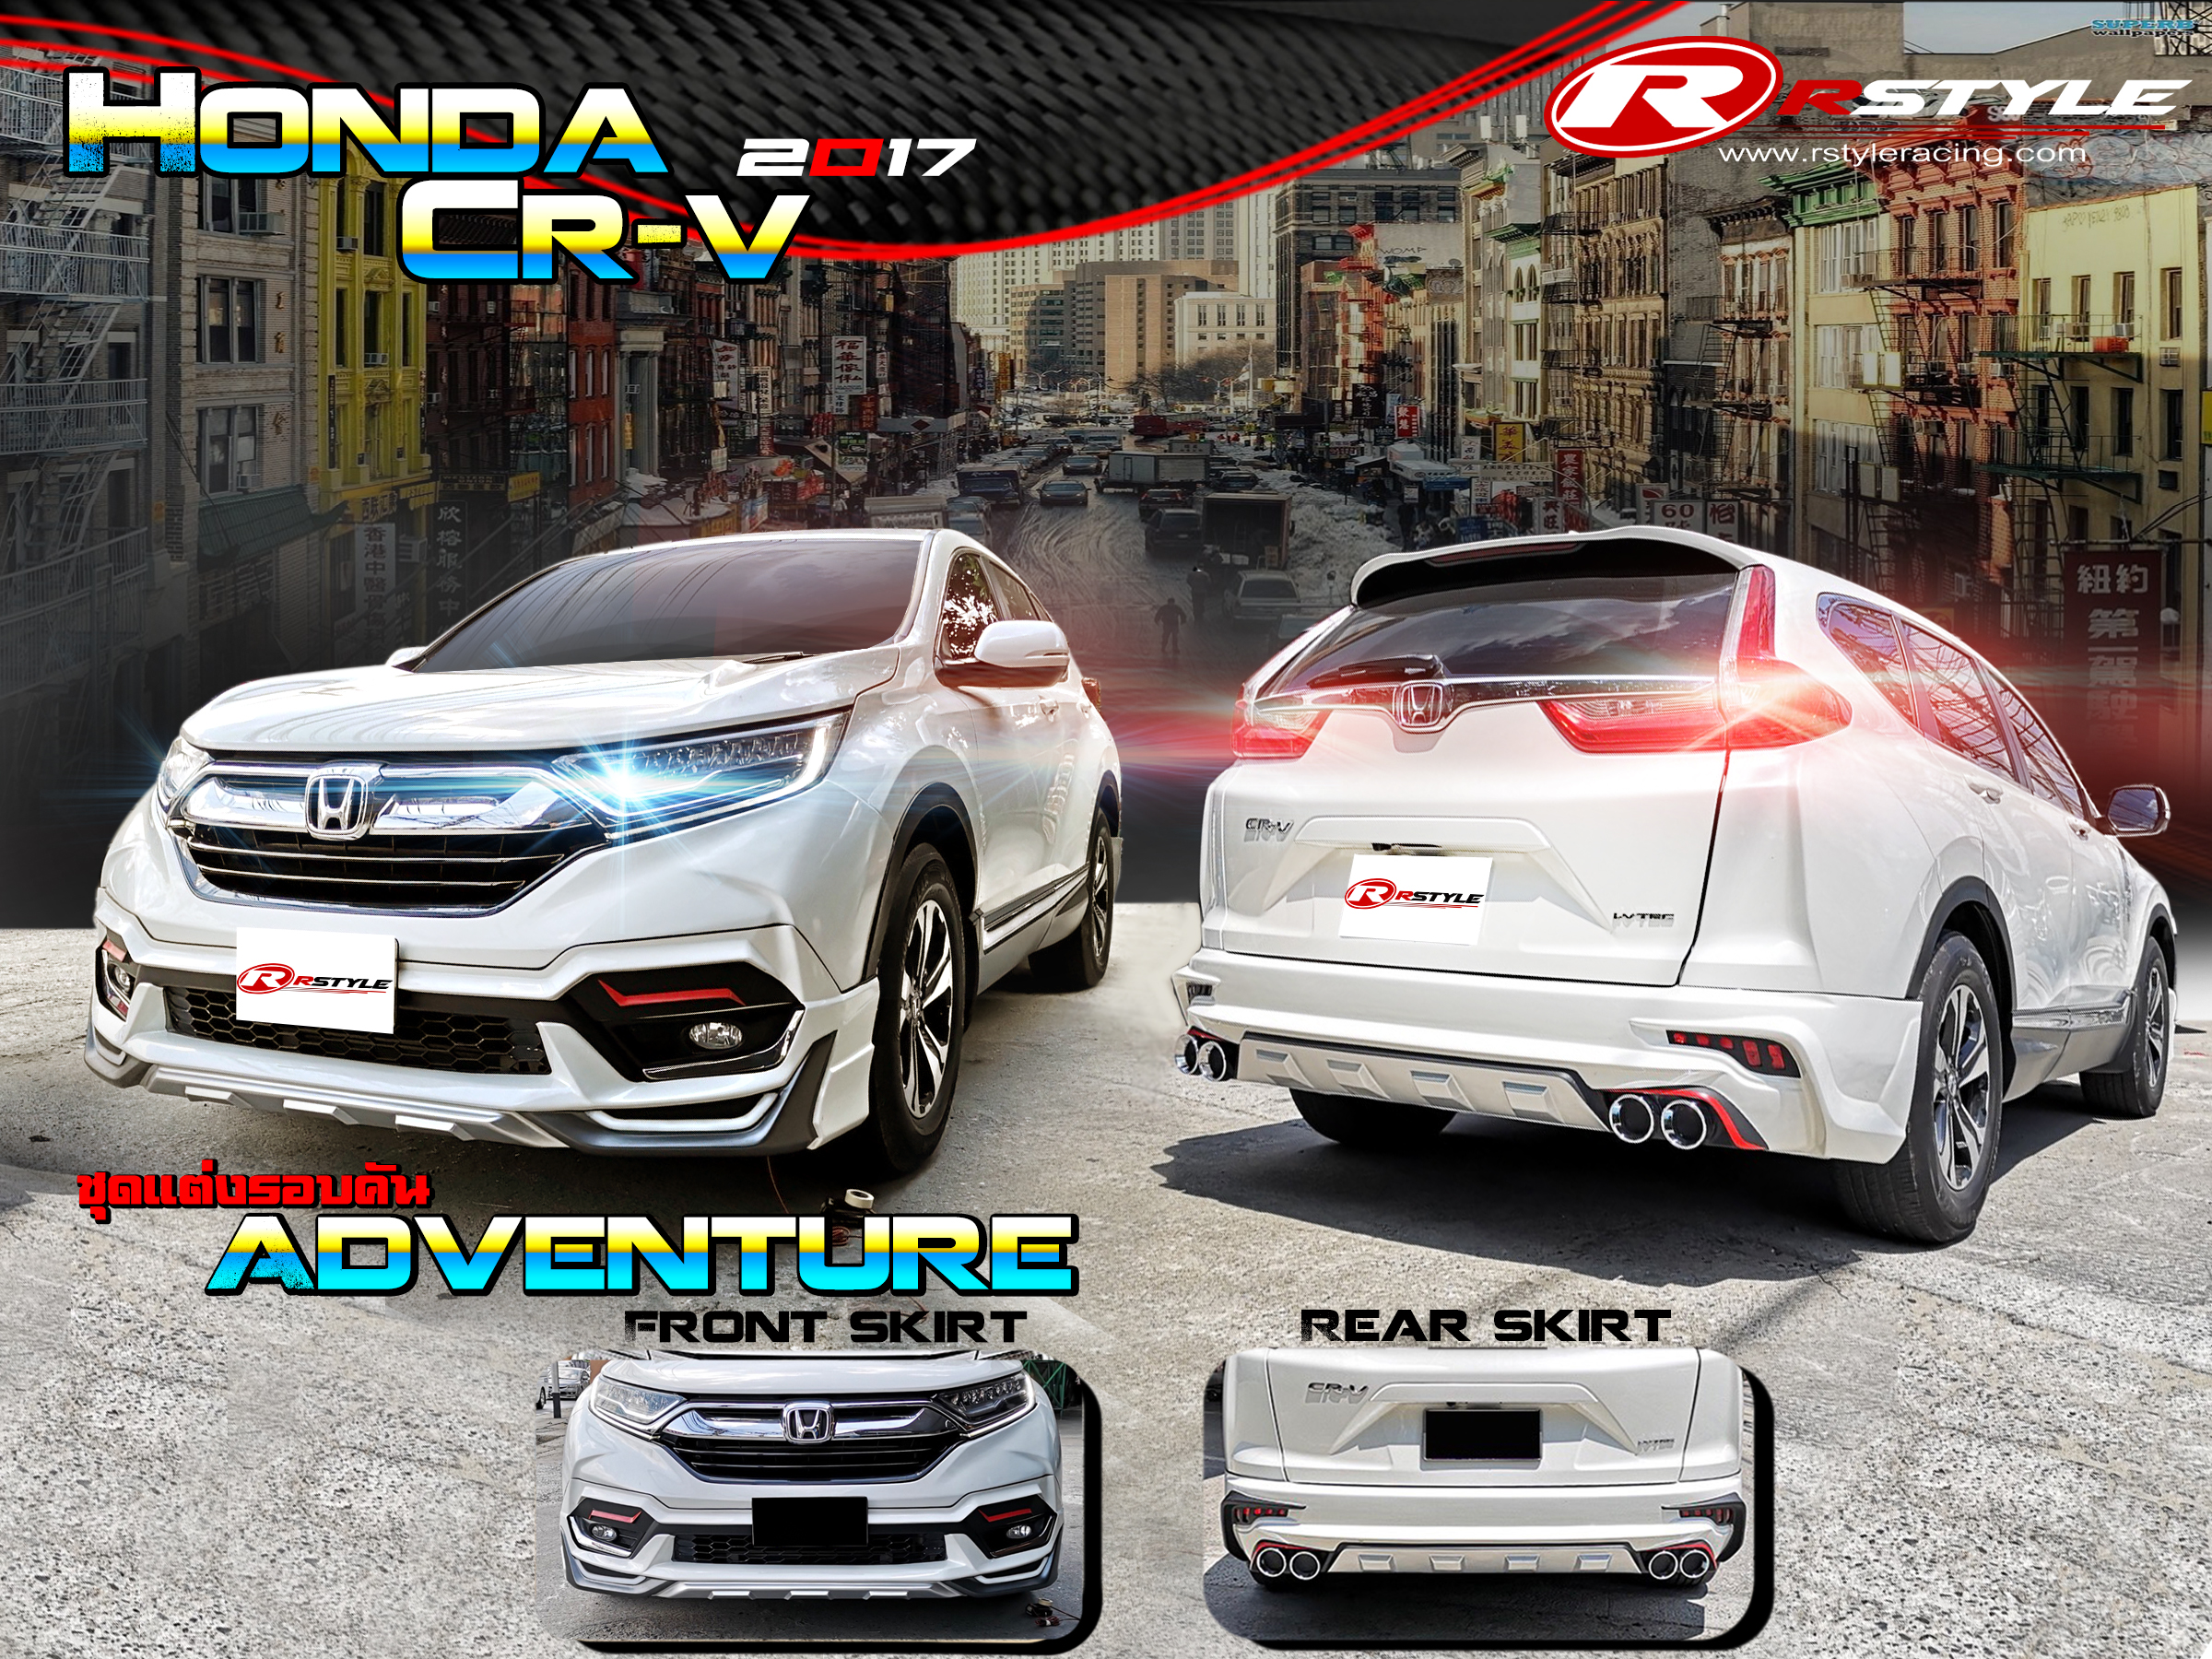 Body Kit For Honda Crv 2017 Adventure Style Rstyle Racing